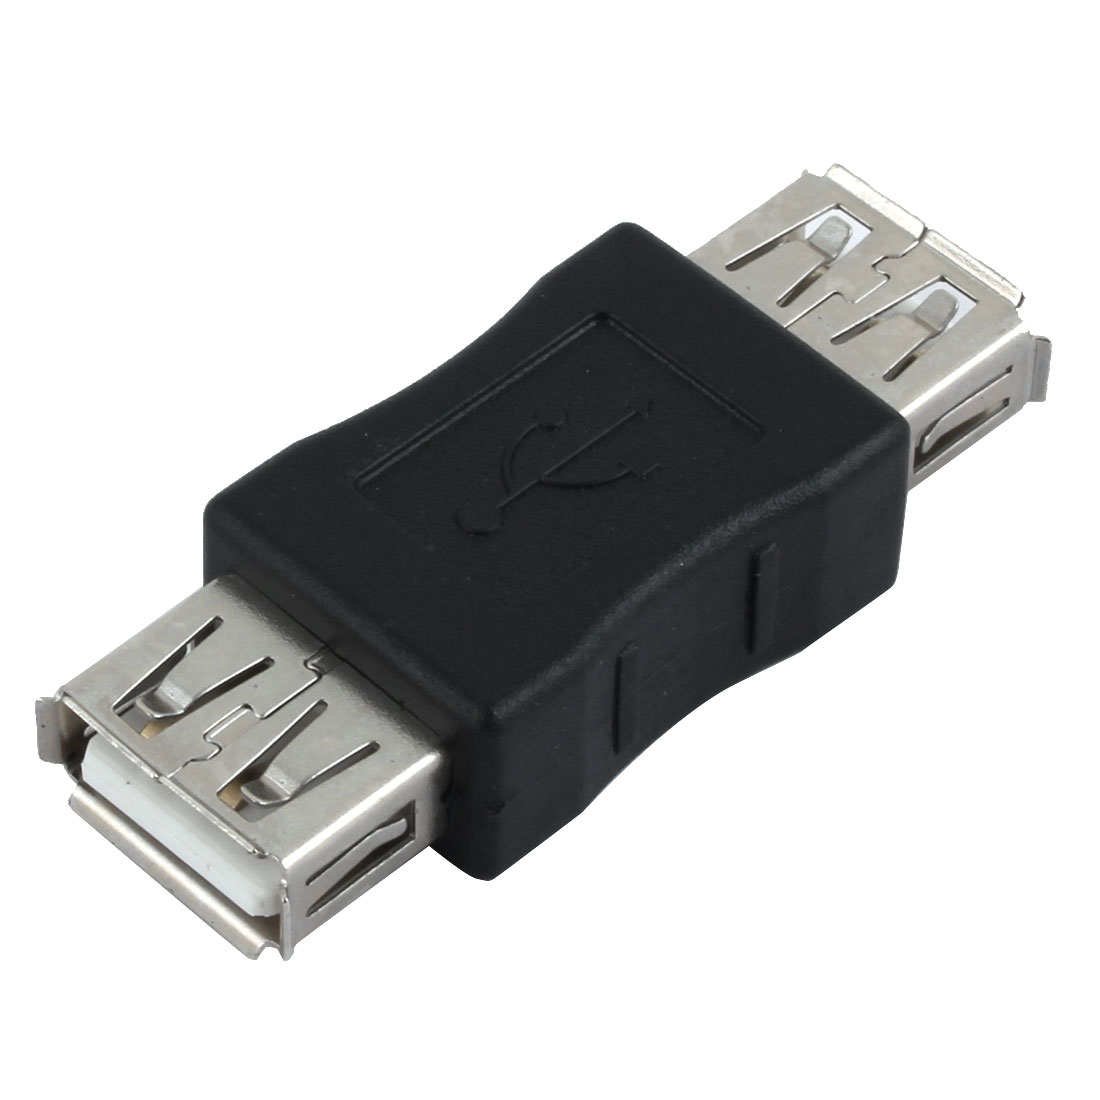 Female to Female Type A USB 2.0 Converter Adapter